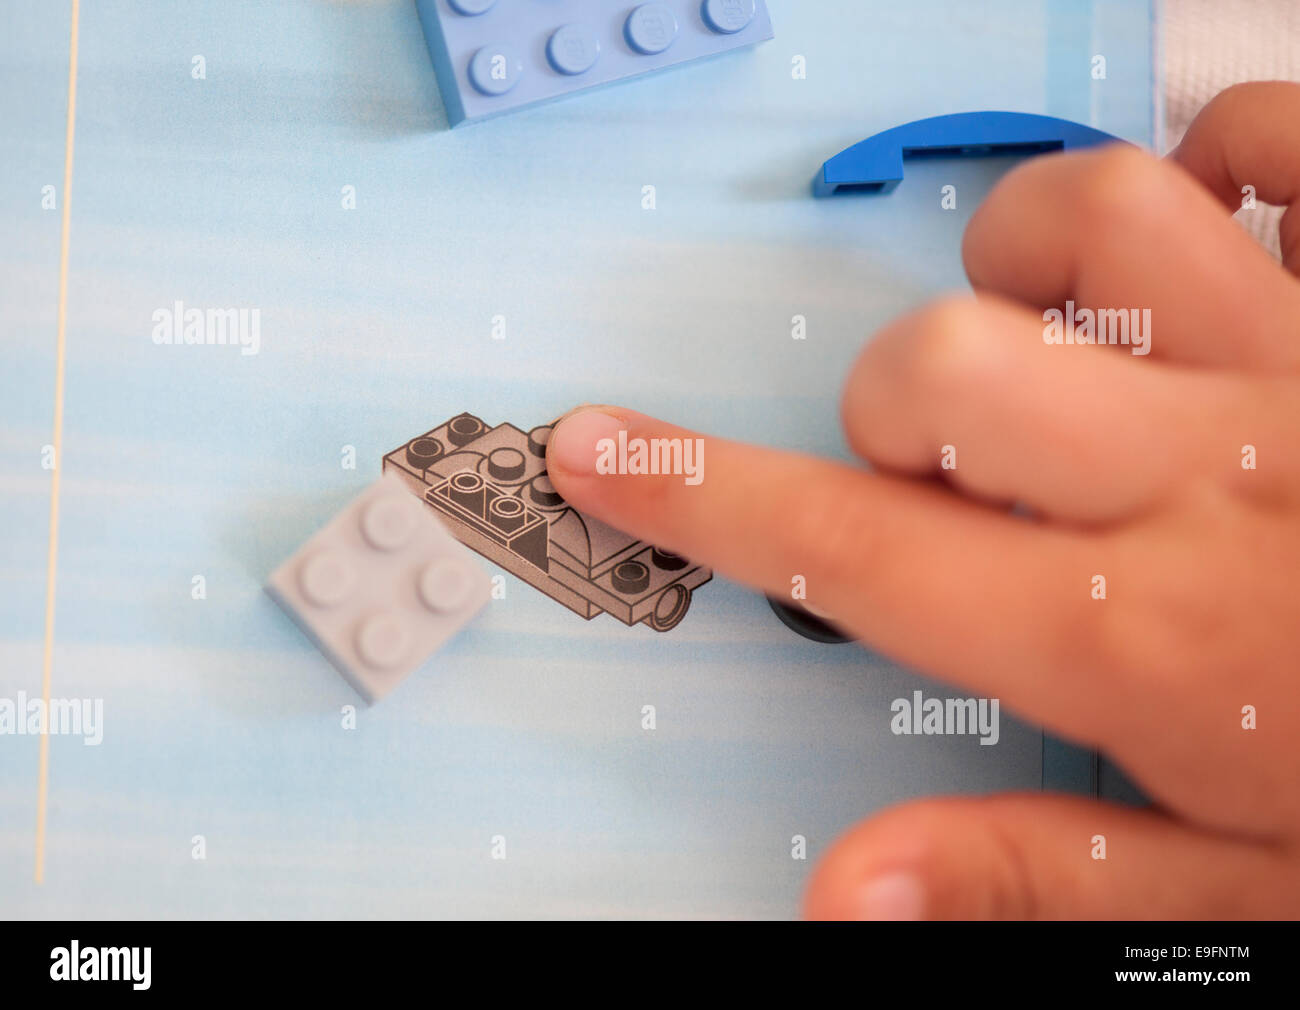 Paphos, Cyprus - December 19, 2013 Children's fingers showing on the Lego instructions. - Stock Image